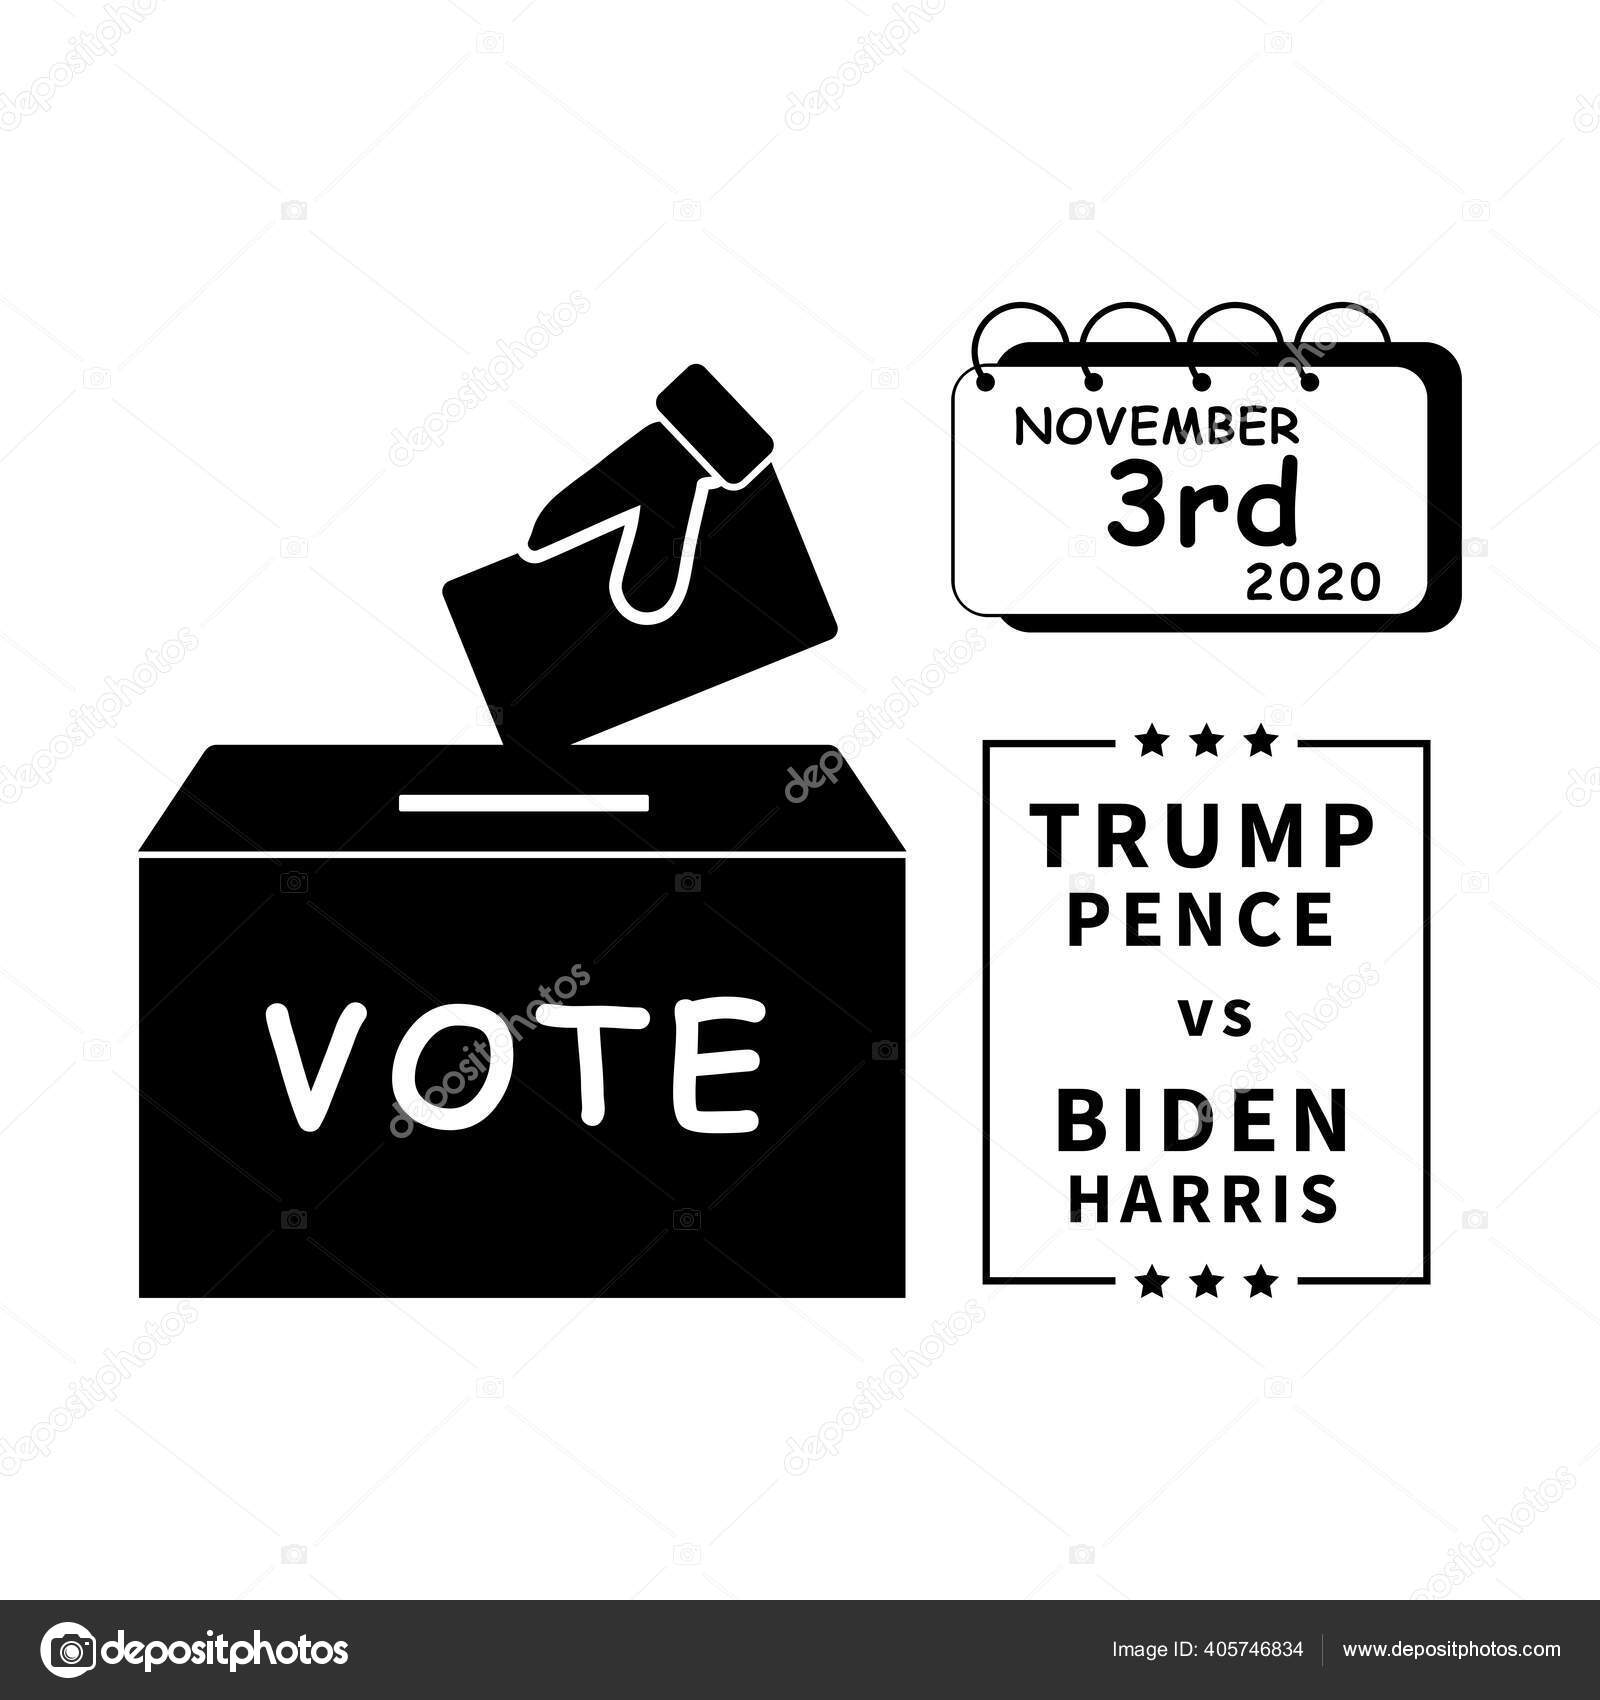 887 Voters Vector Images Free Royalty Free Voters Vectors Depositphotos